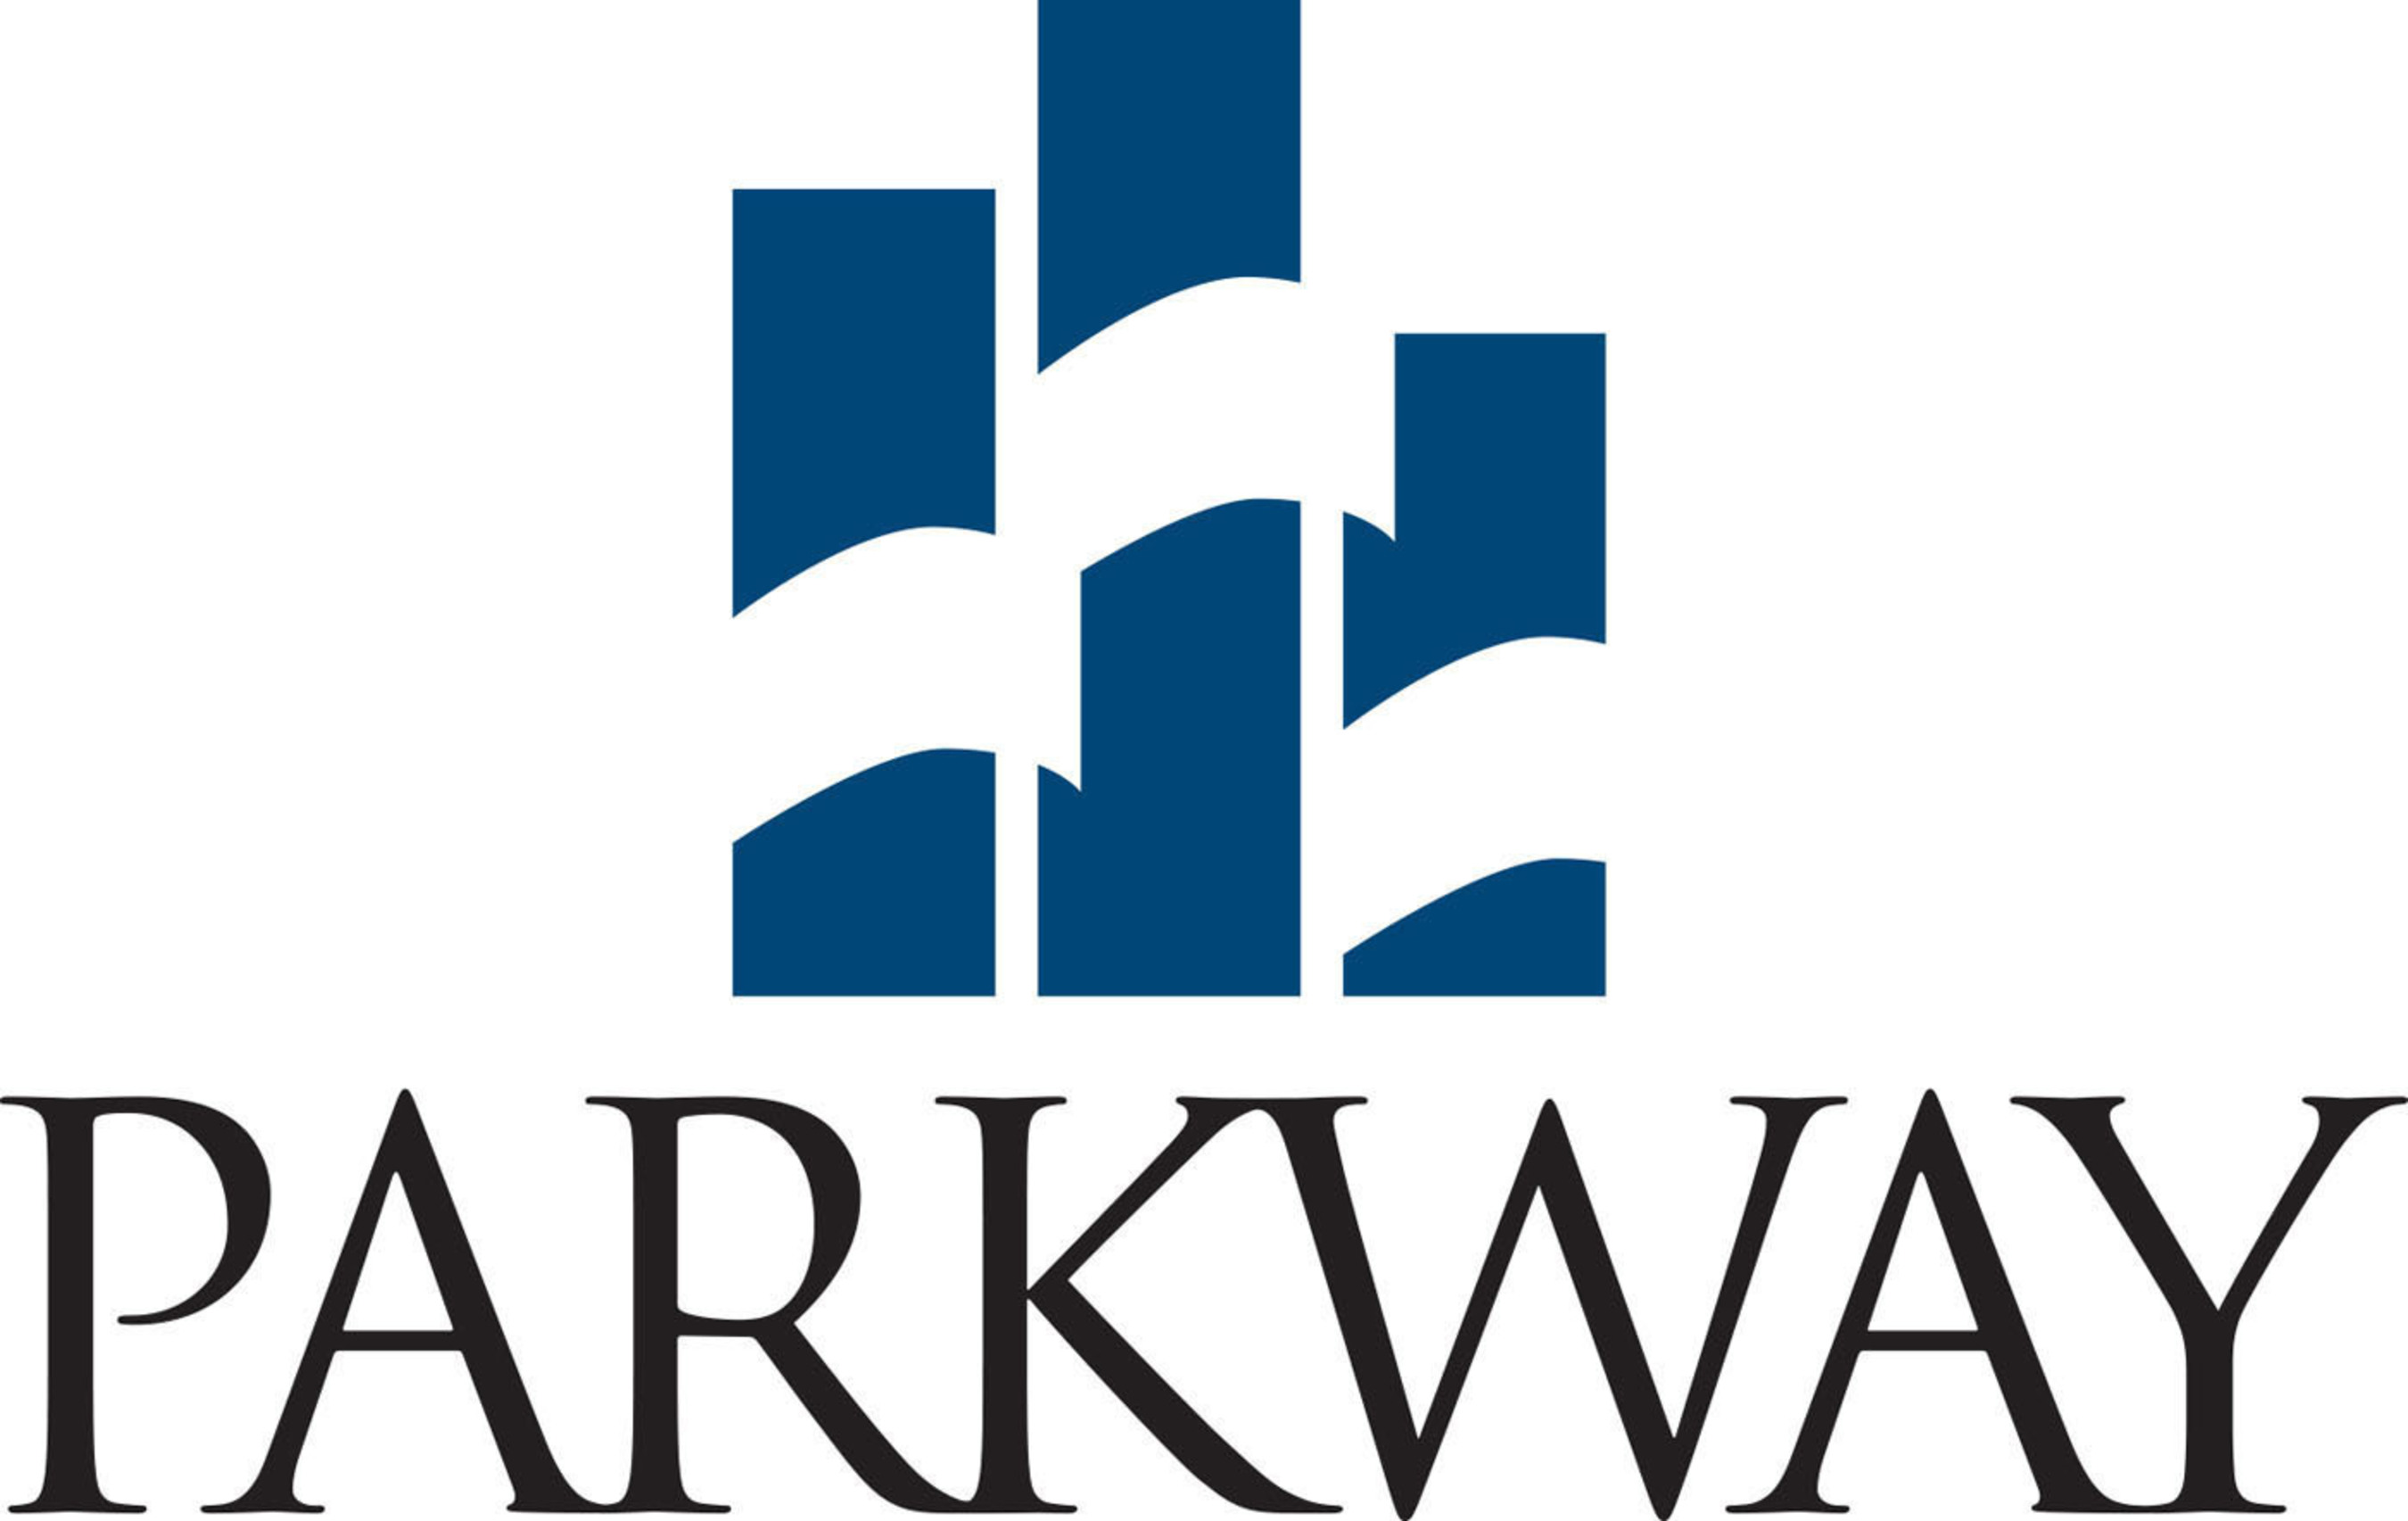 Parkway Announces 2015 Second Quarter Conference Call